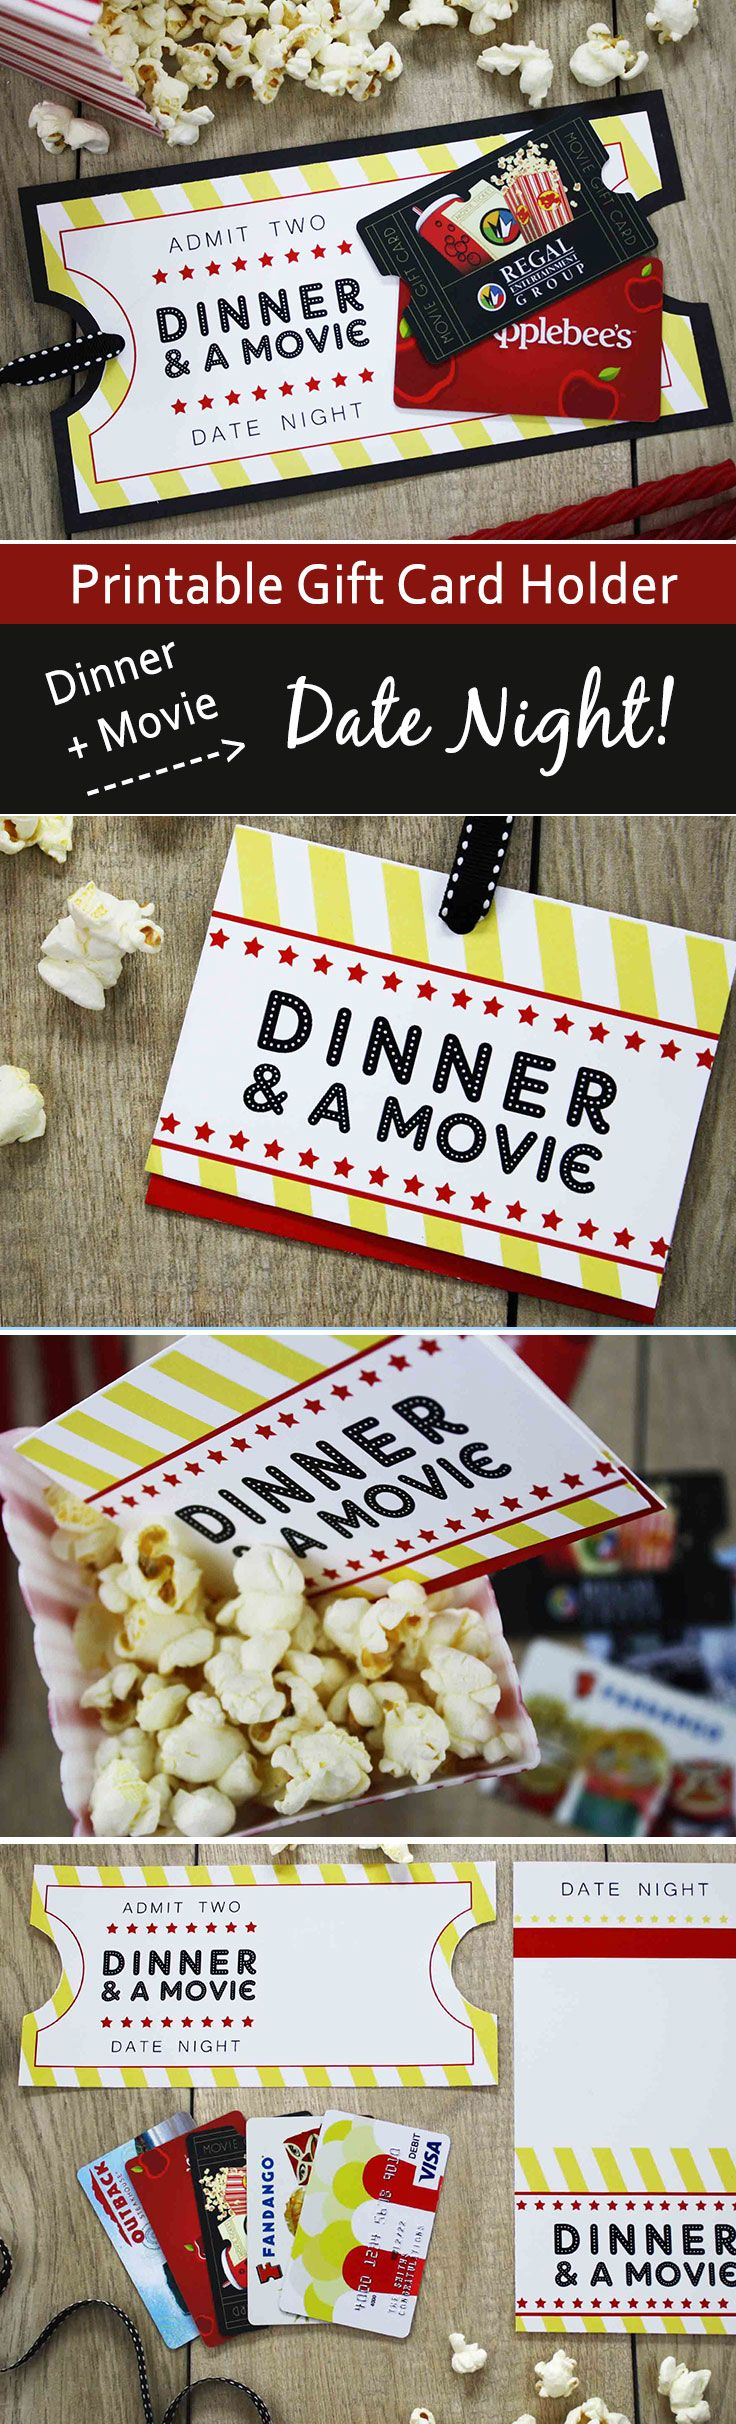 wedding gift card holders%0A This wedding gift card holder is perfect for holding gift cards to dinner  and a movie